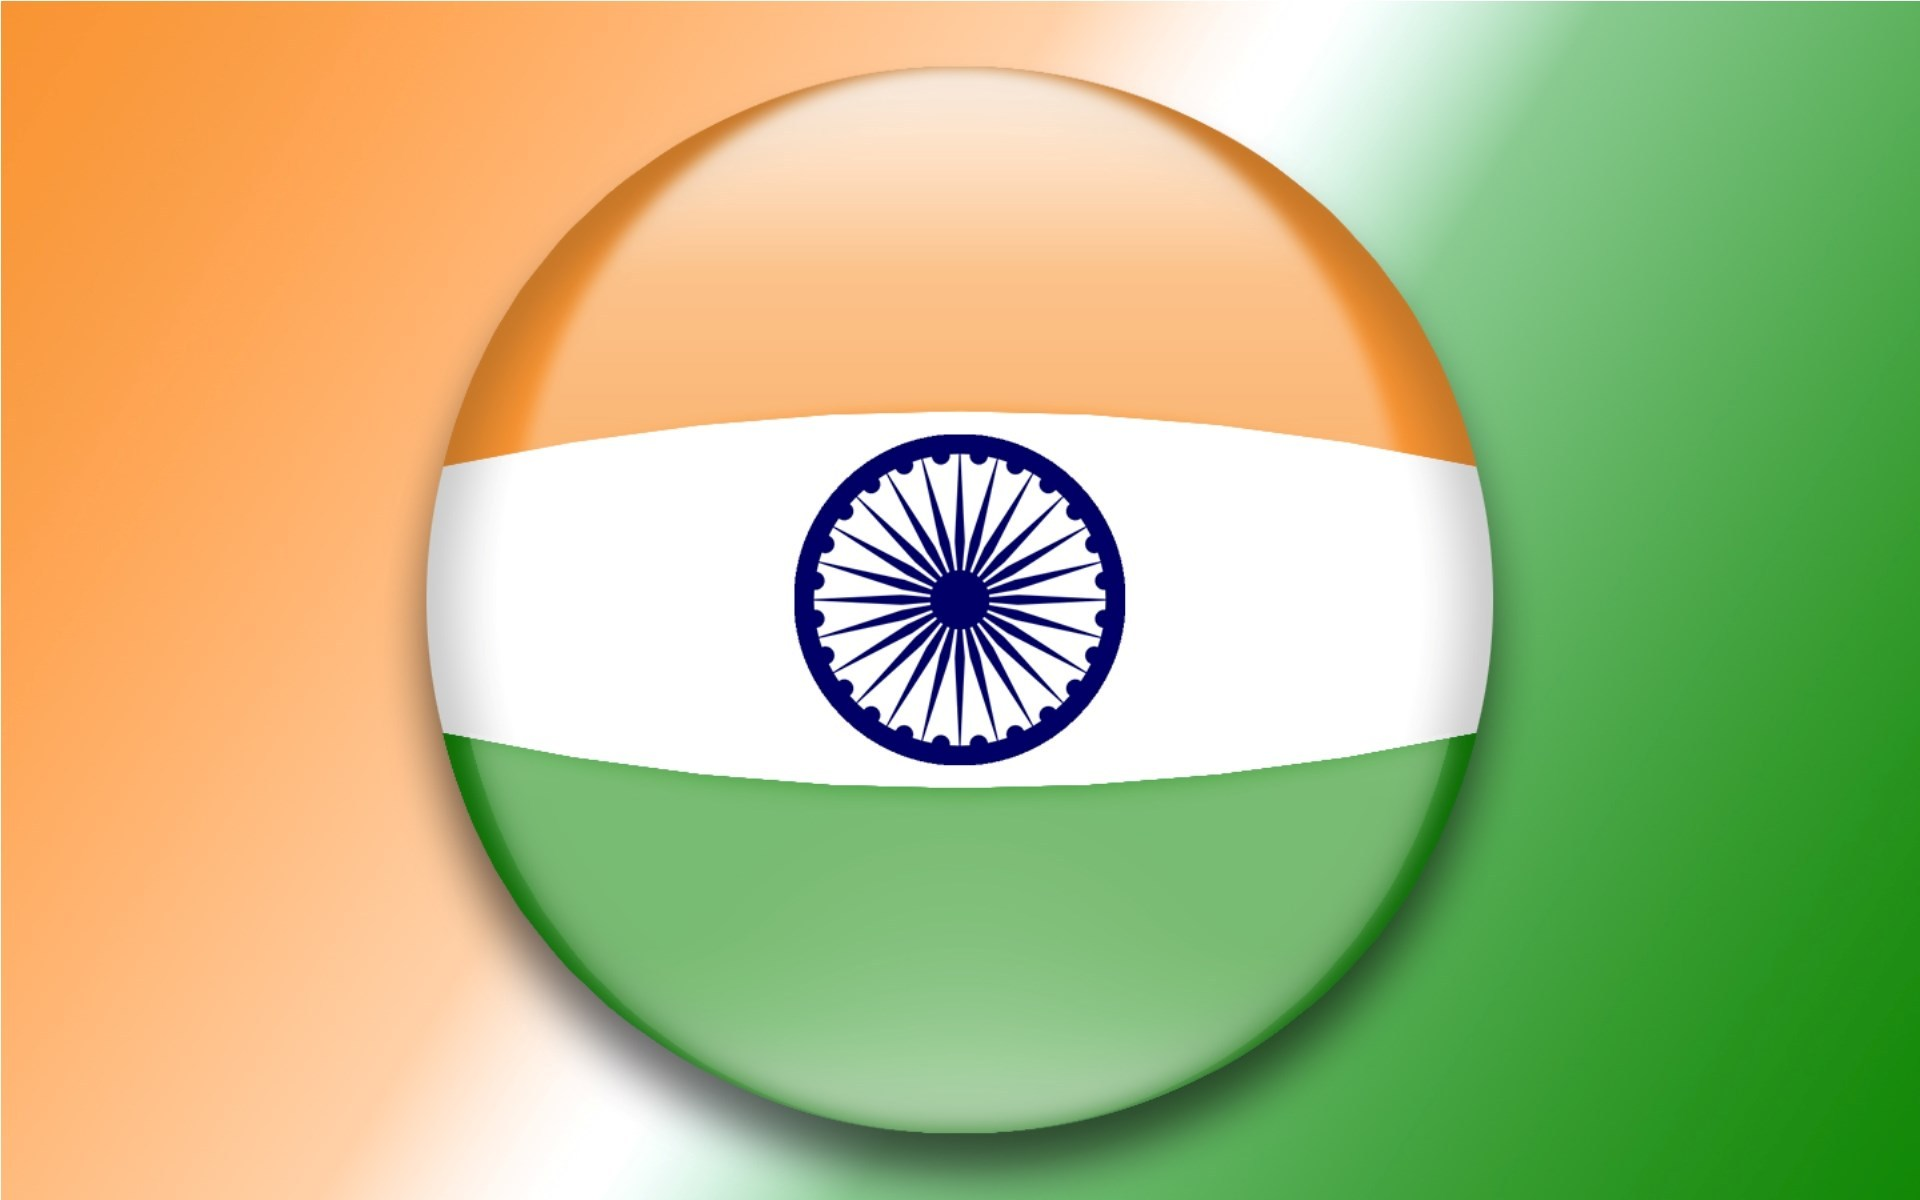 Advanced textile material for national flag; IIT Delhi start-up joins hands with Flag Foundation of India